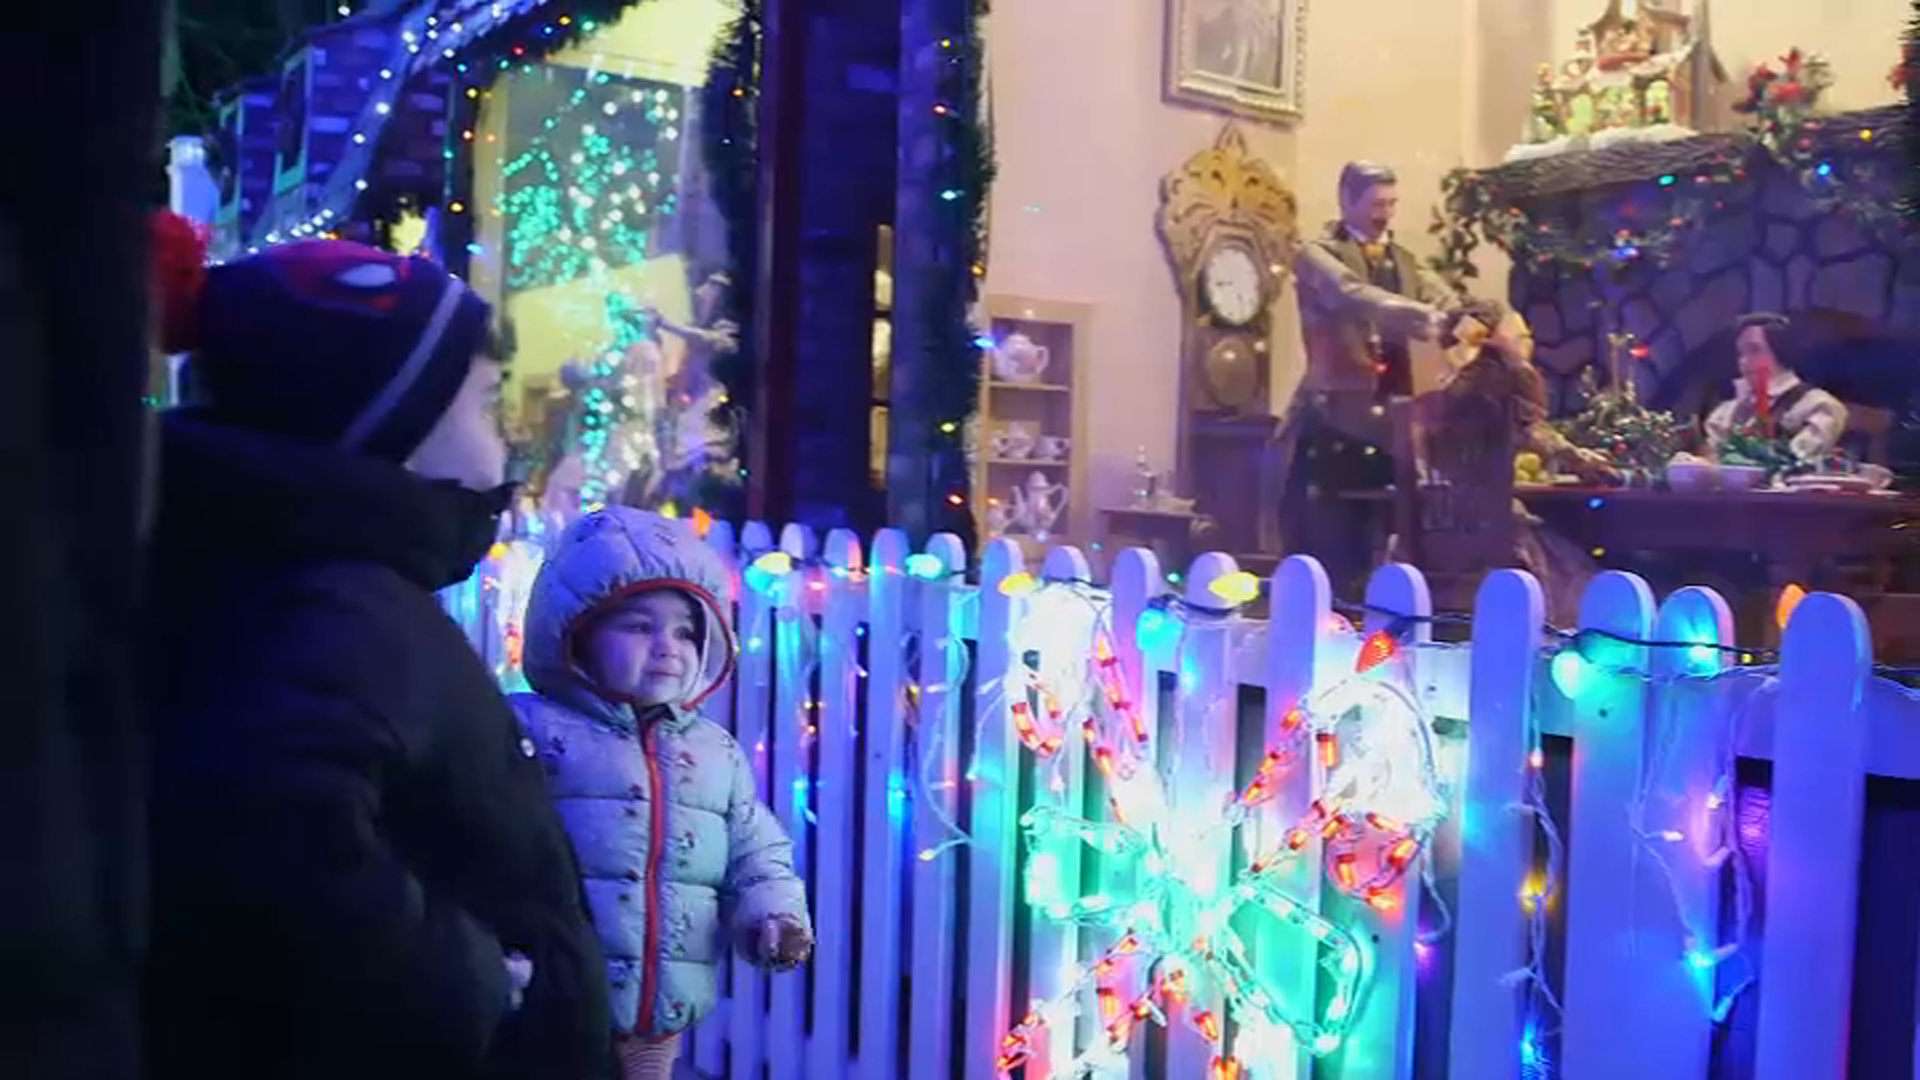 NYC Man Honors Late Wife Killed on 9/11 With Holiday Lights, Helps Raise Fund for Kids